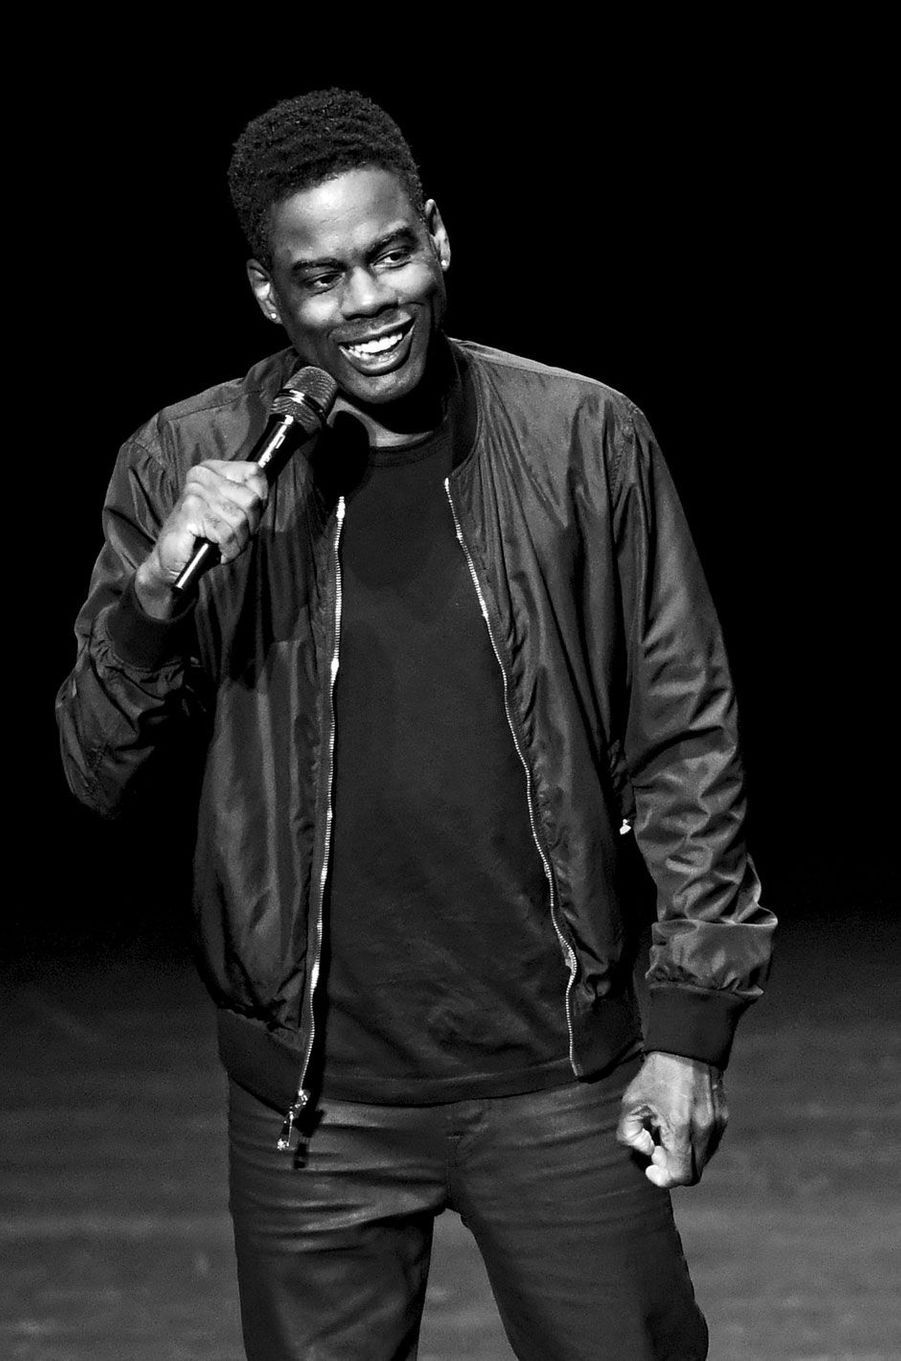 Chris Rock, 57 millions de dollars